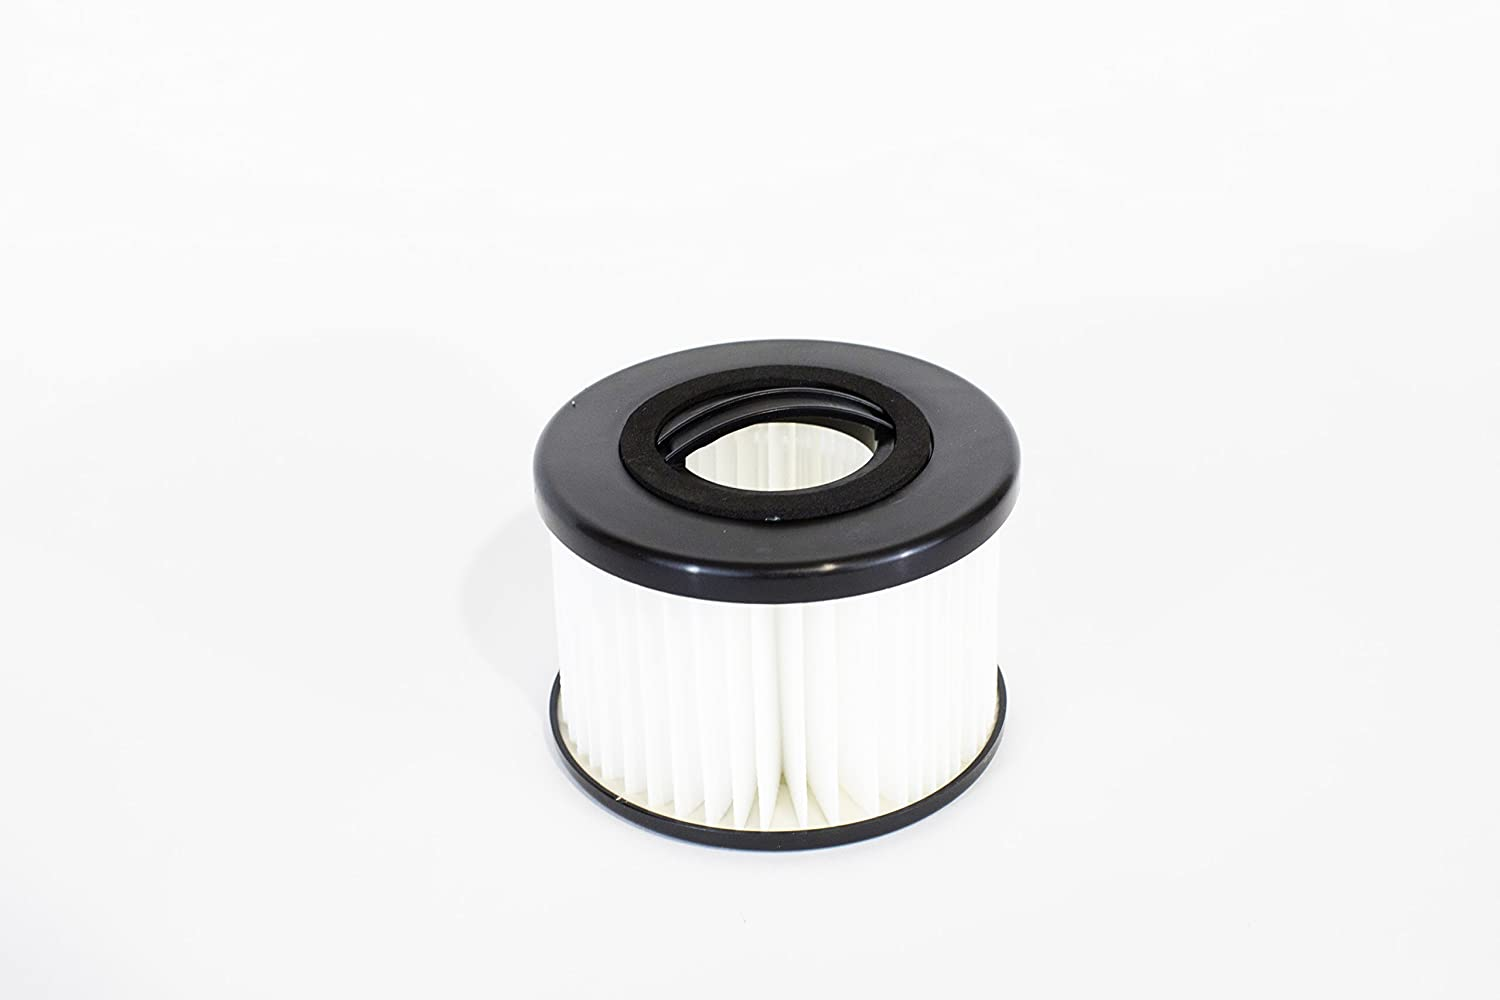 Designed to be Compatible with Eureka Enviro Vac Upright Vacuum Cleaner. FilterBuy Eureka DCF20 DCF-20 Replaces Eureka Part # 3041 65318A 2 79902 Replacement Filters